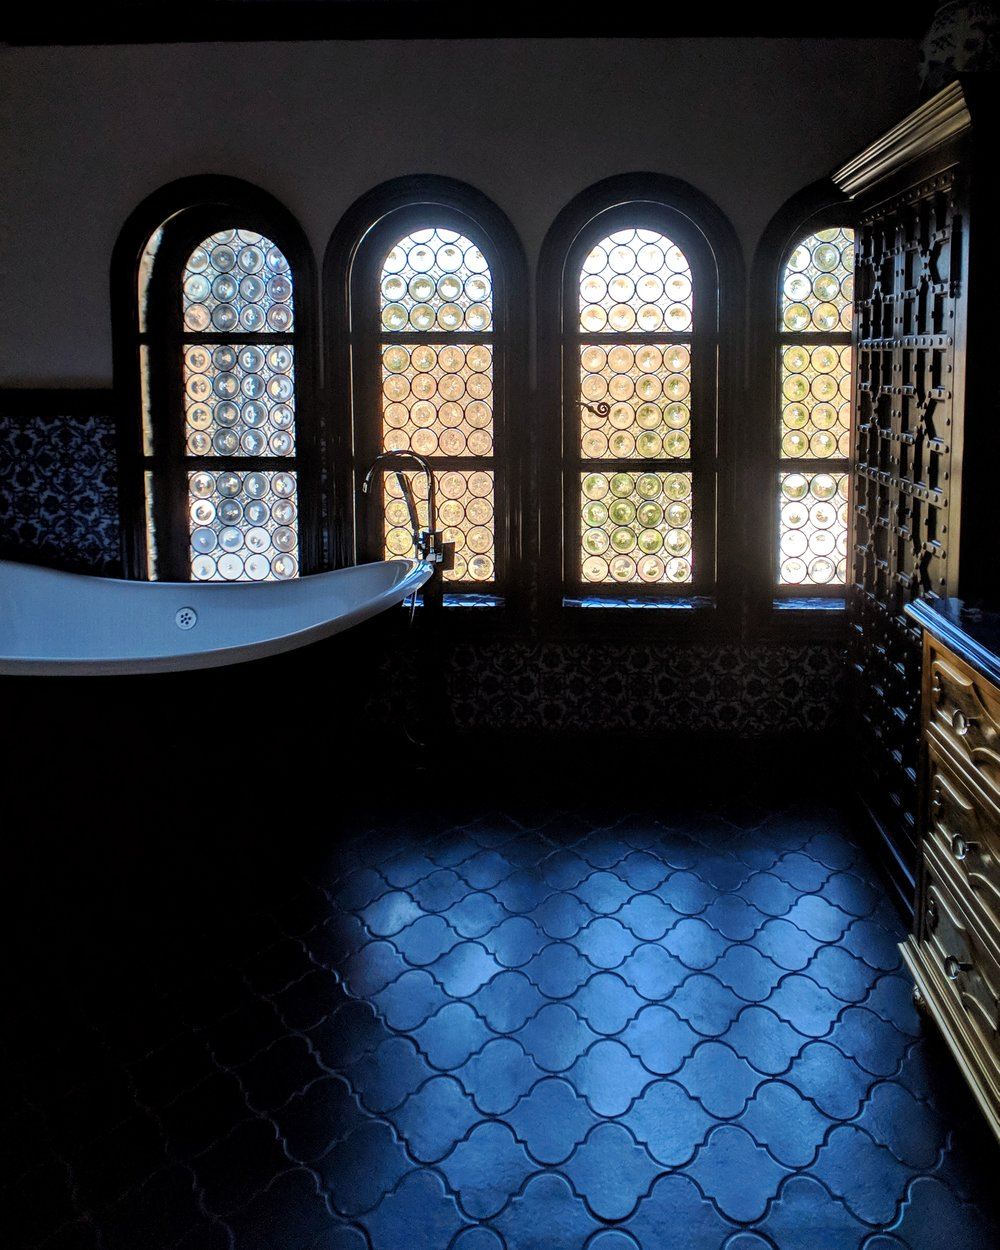 stained glass leaded glass design legacy glass studios menlo park bay area california custom design rondels spanish influence interior design tile privacy glass black bathroom arched windows.jpeg